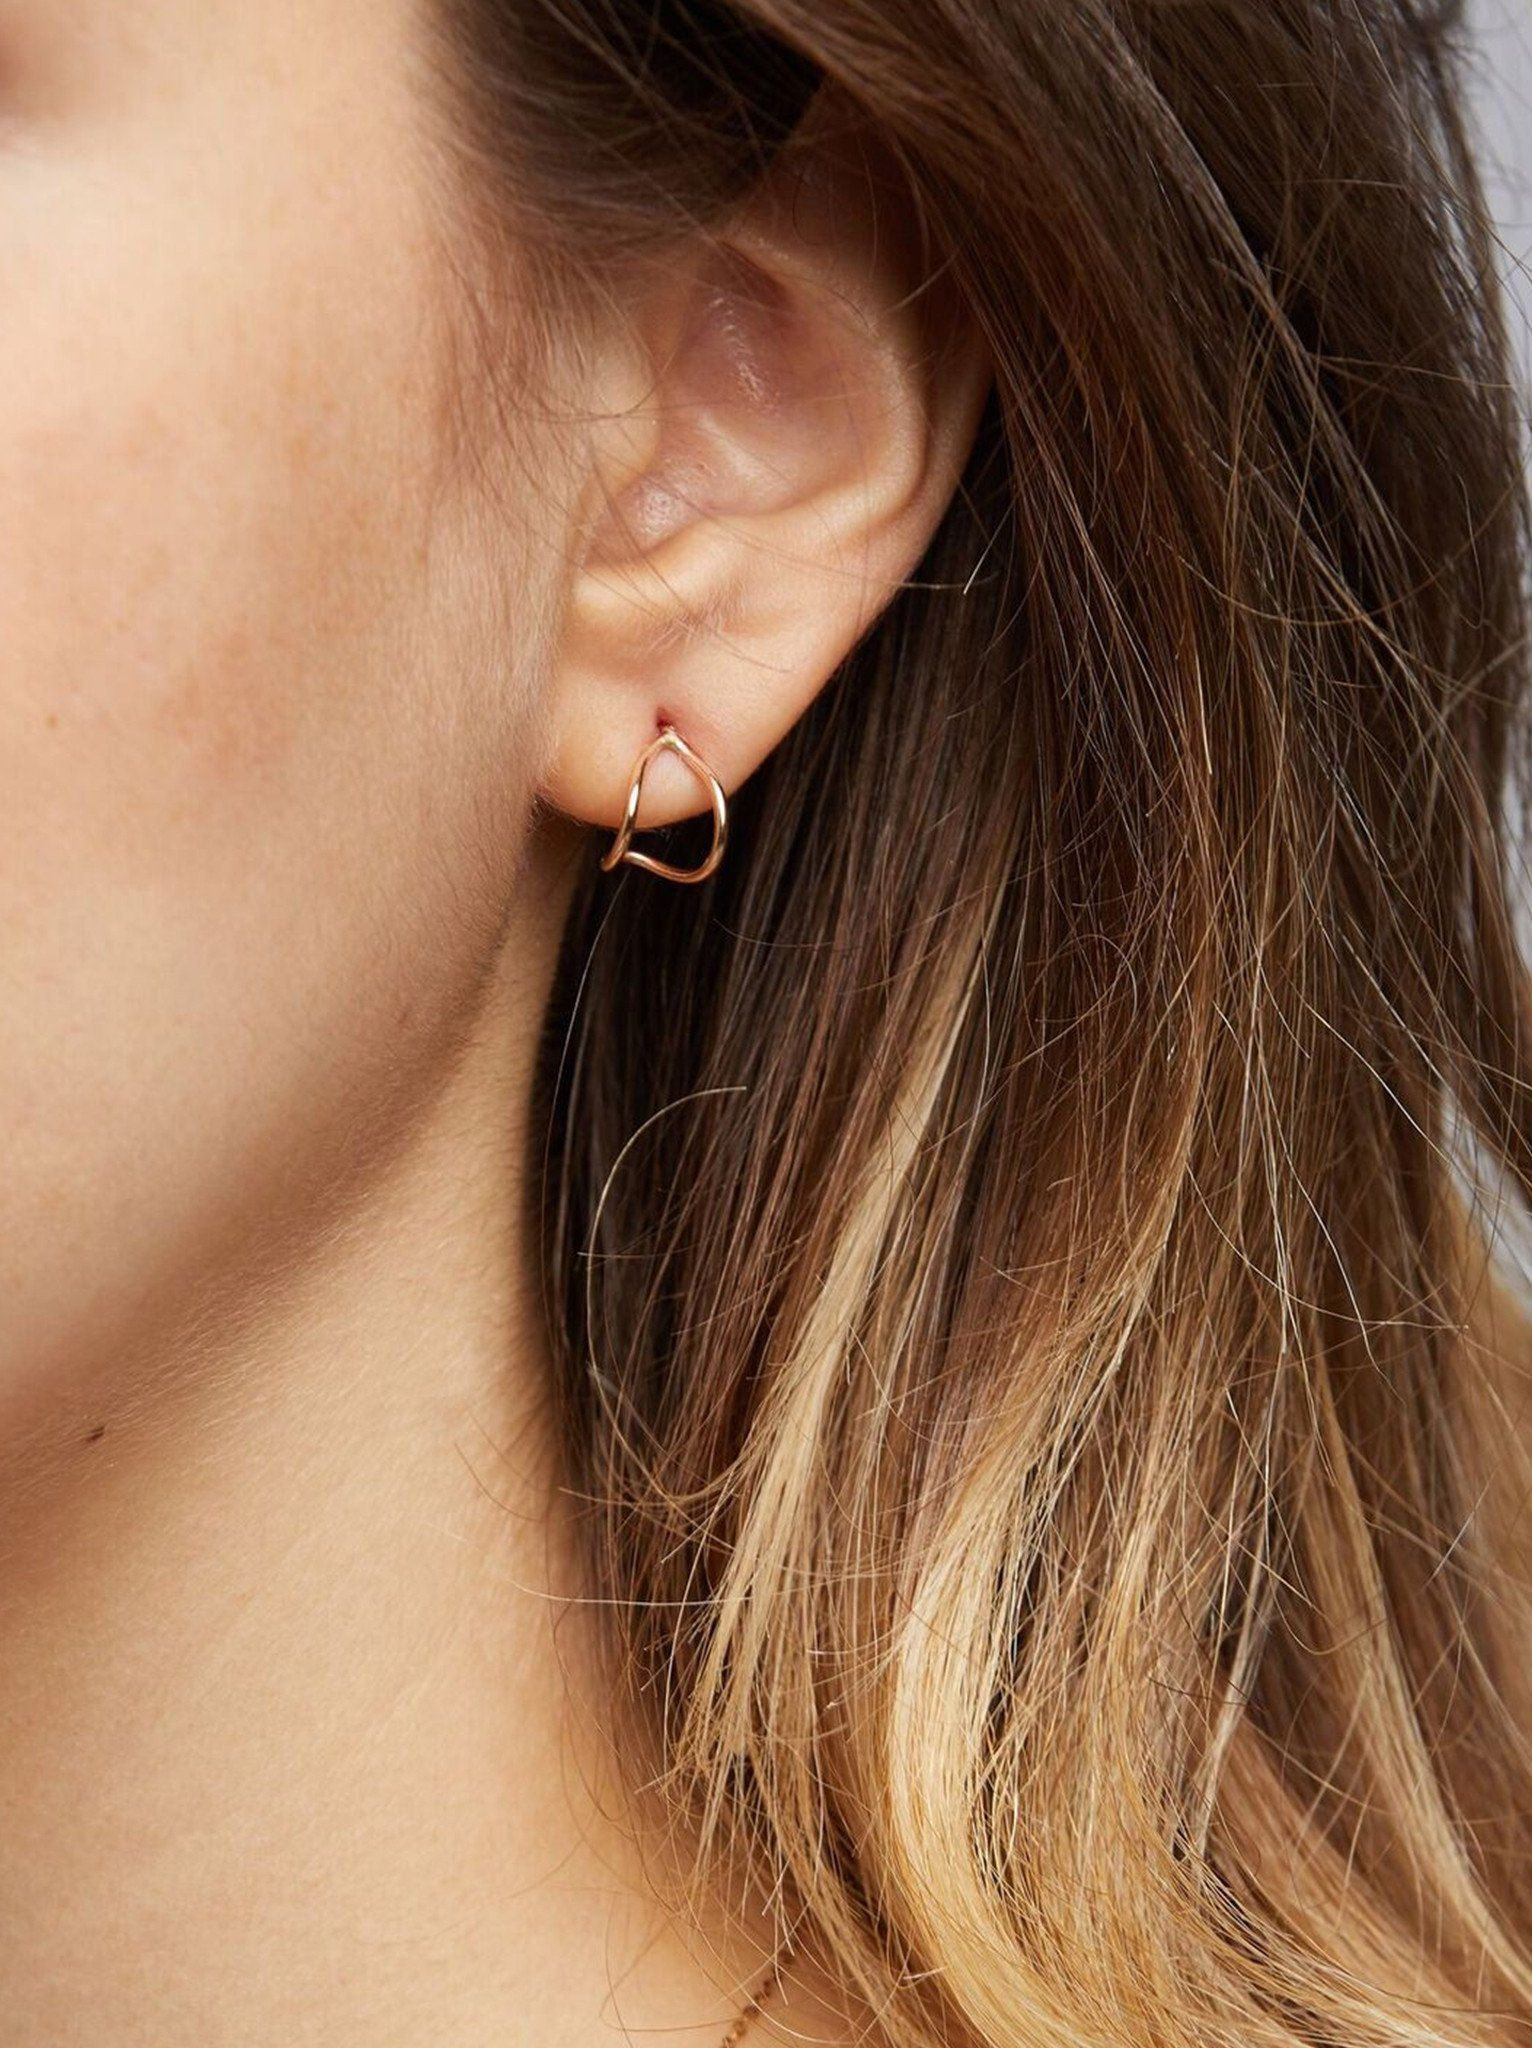 9a52754fac4 These studs softly hug the earlobe while providing a fun new shape.  Available in 14k gold-fill and sterling silver. Comes with earring backs.